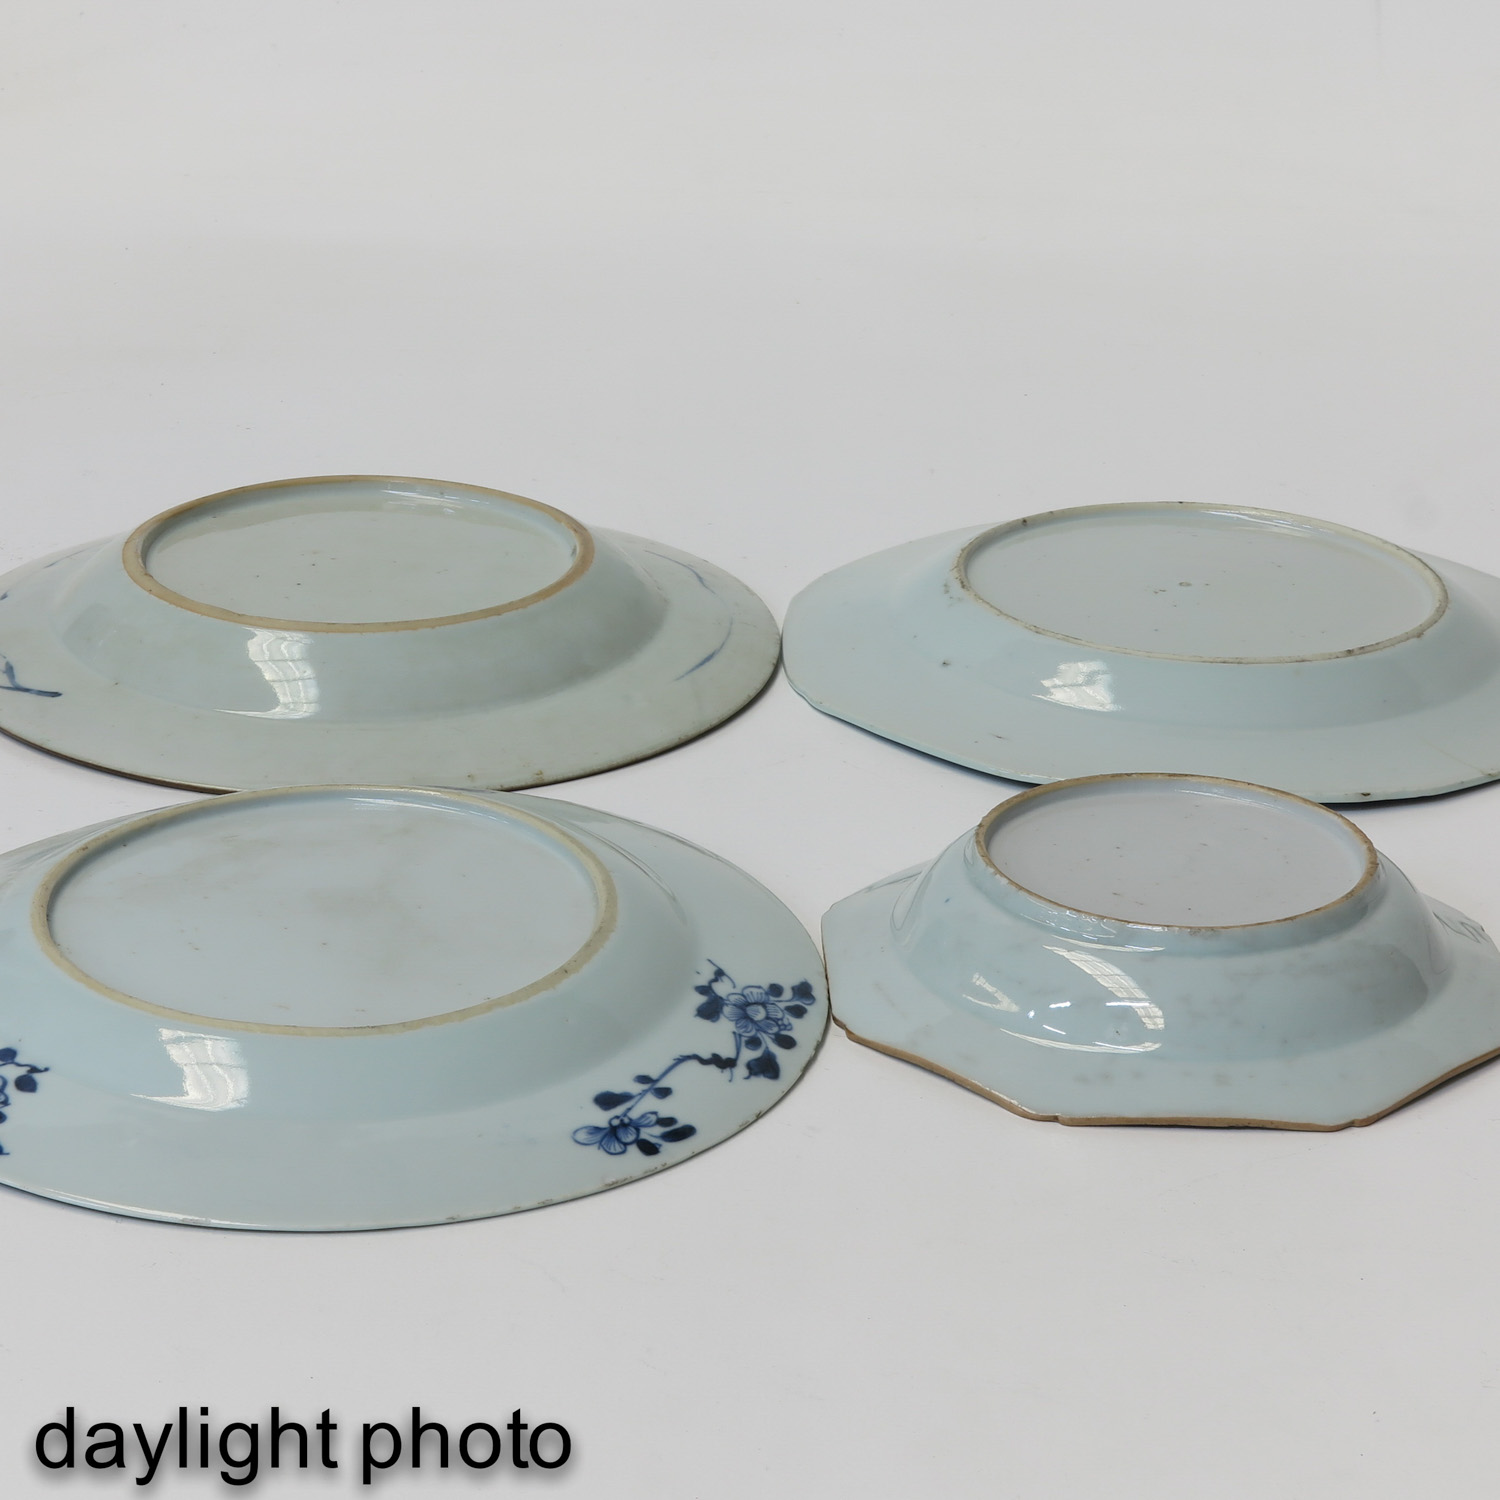 A Collection of 4 Blue and White Plates - Image 8 of 10